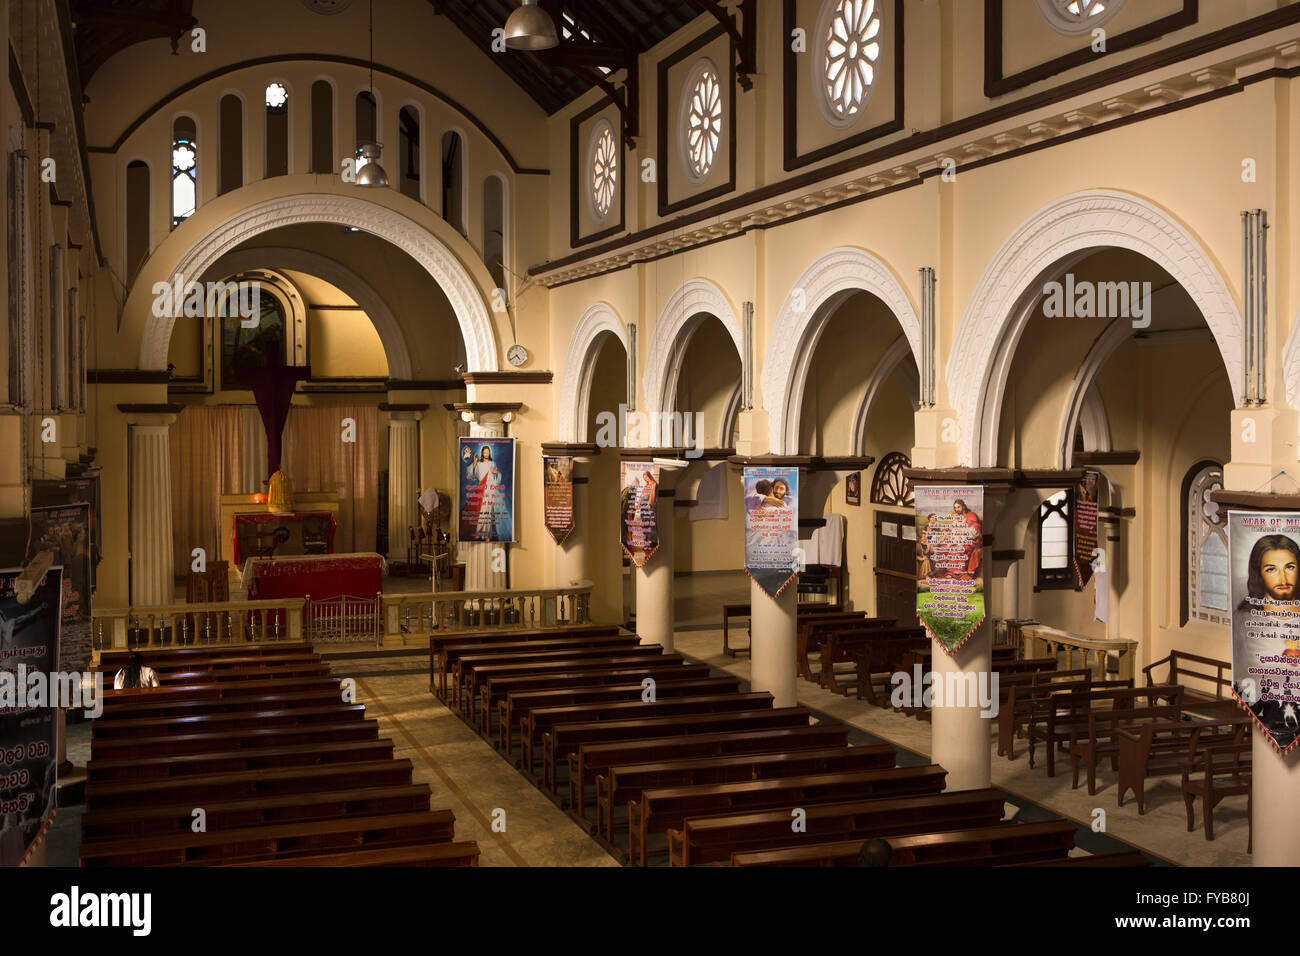 catholic singles in saint xavier Saint andrew parish we are the hands and feet of christ st andrew catholic church is honored to welcome you to its web site as you explore this site.